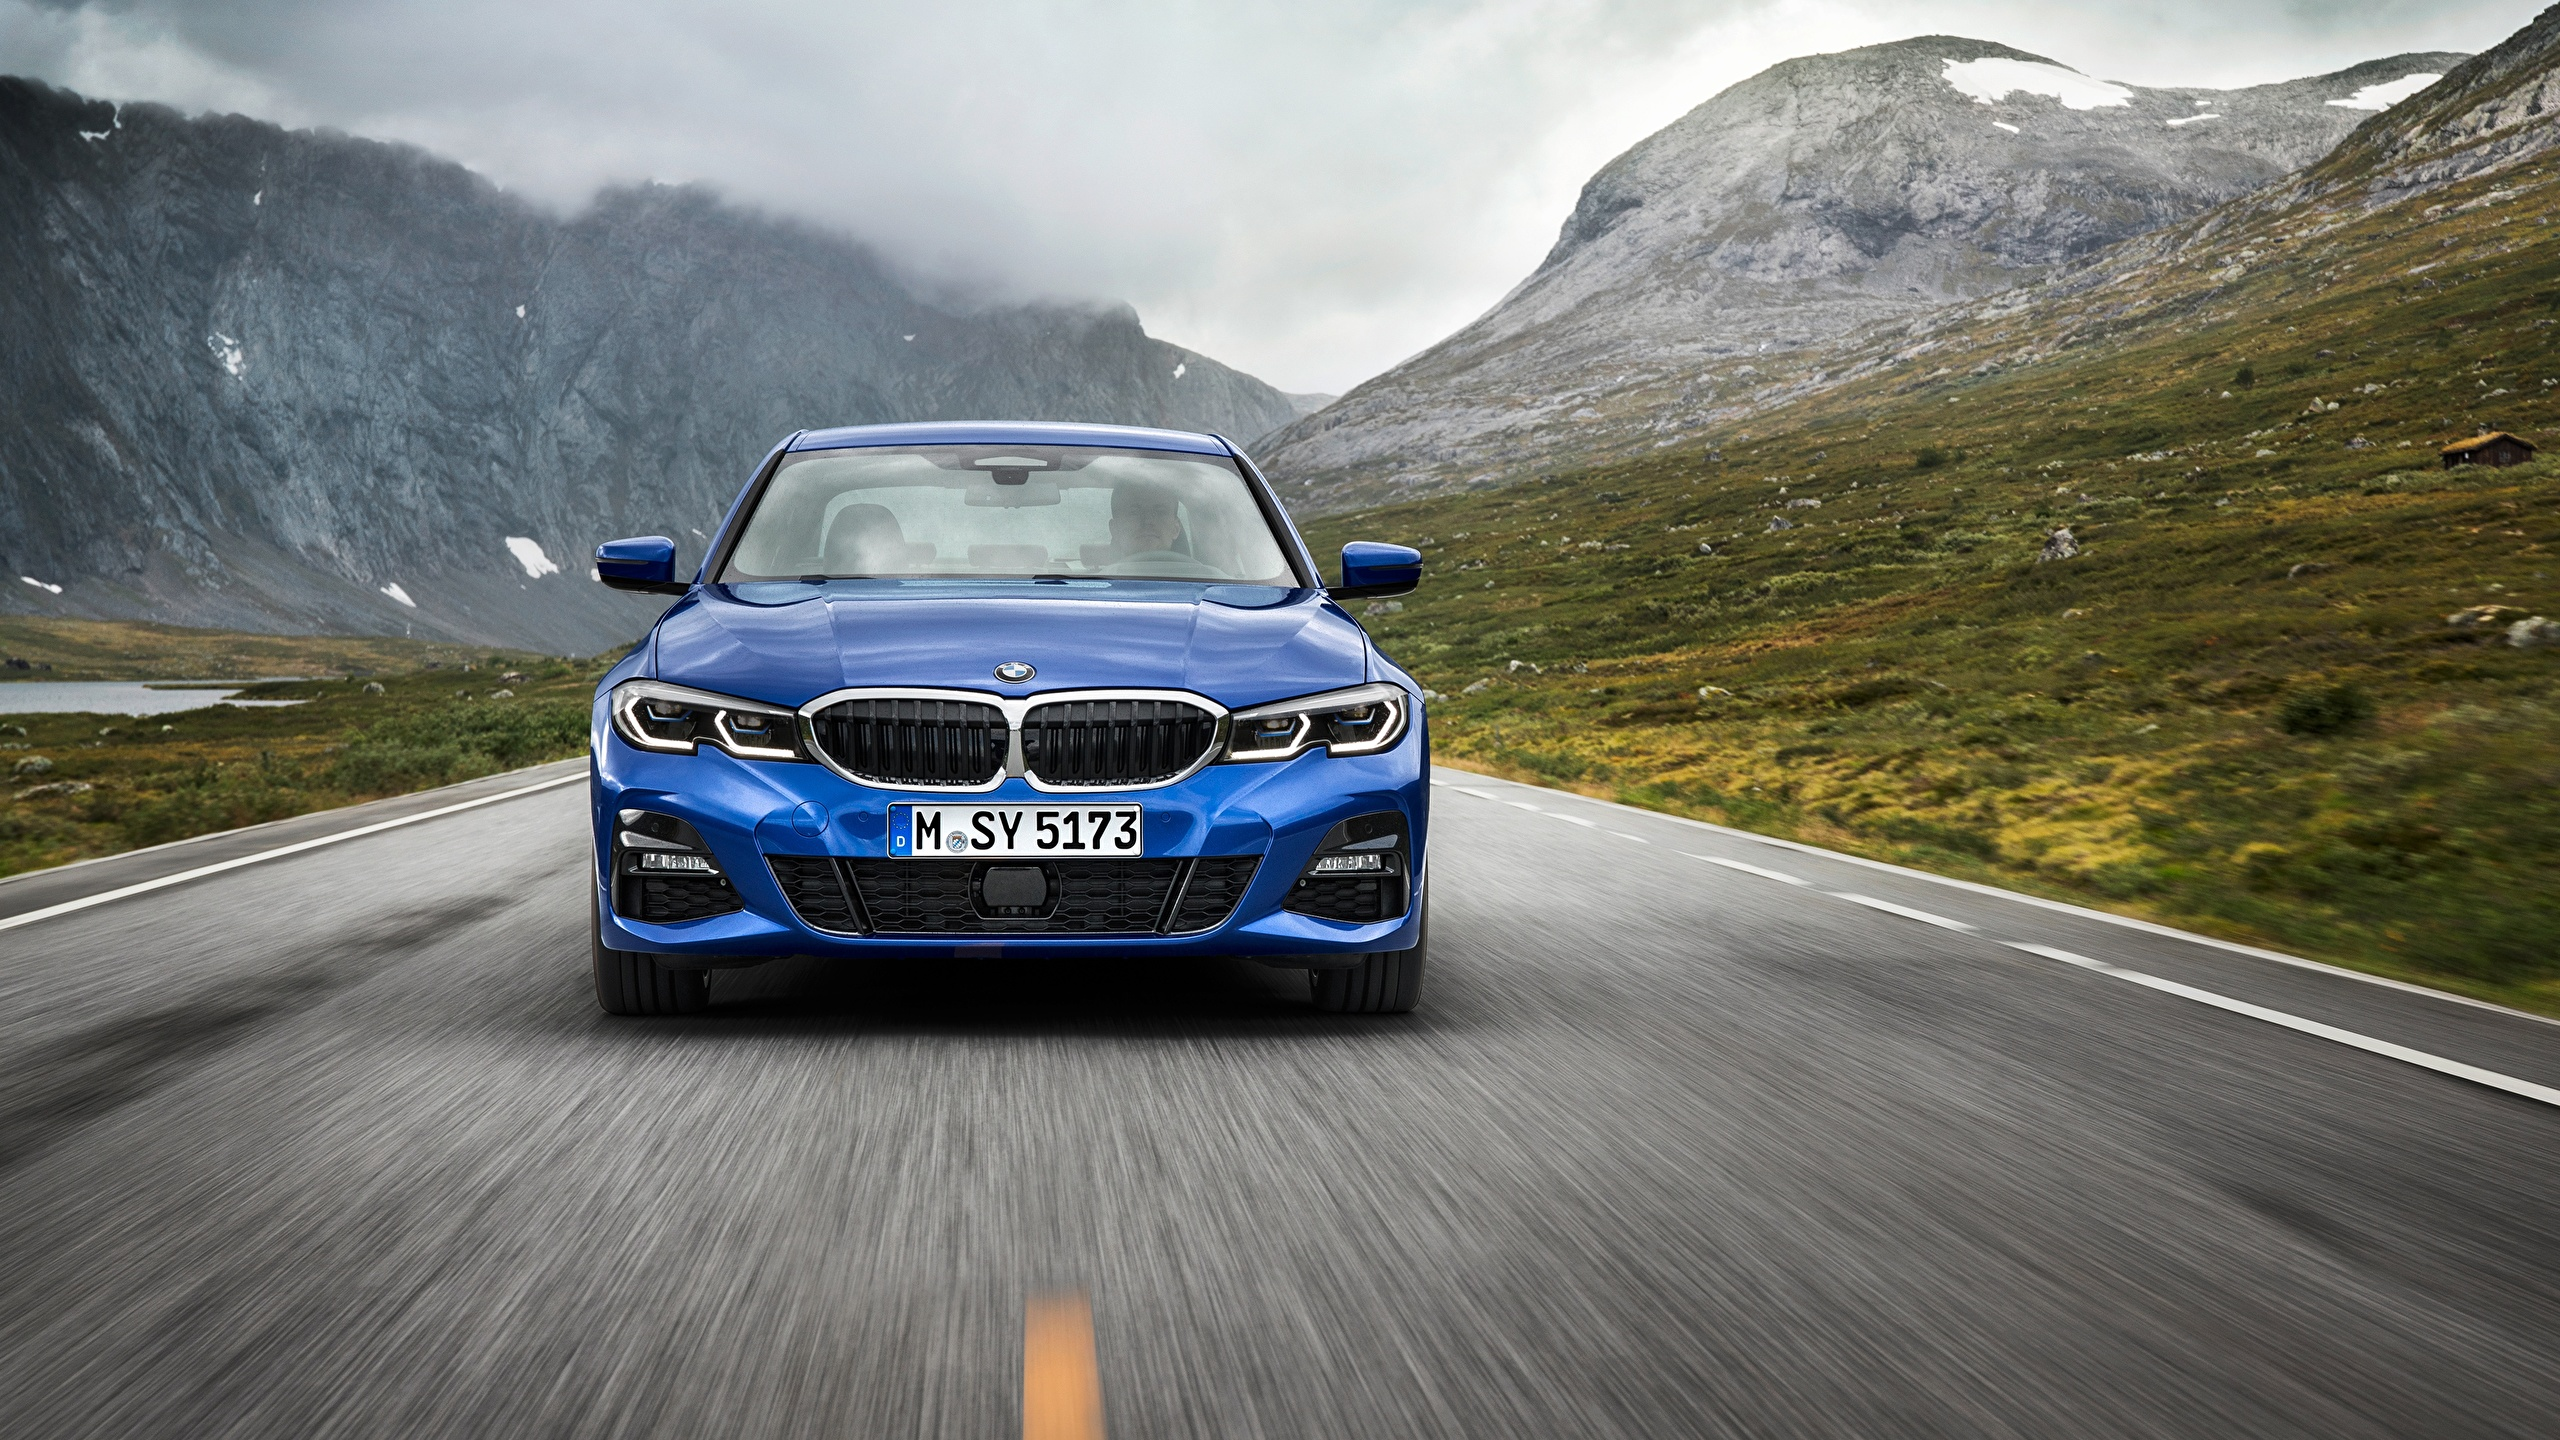 Photos Bmw 3 Series M Sport G20 Blue Riding Auto Front 2560x1440